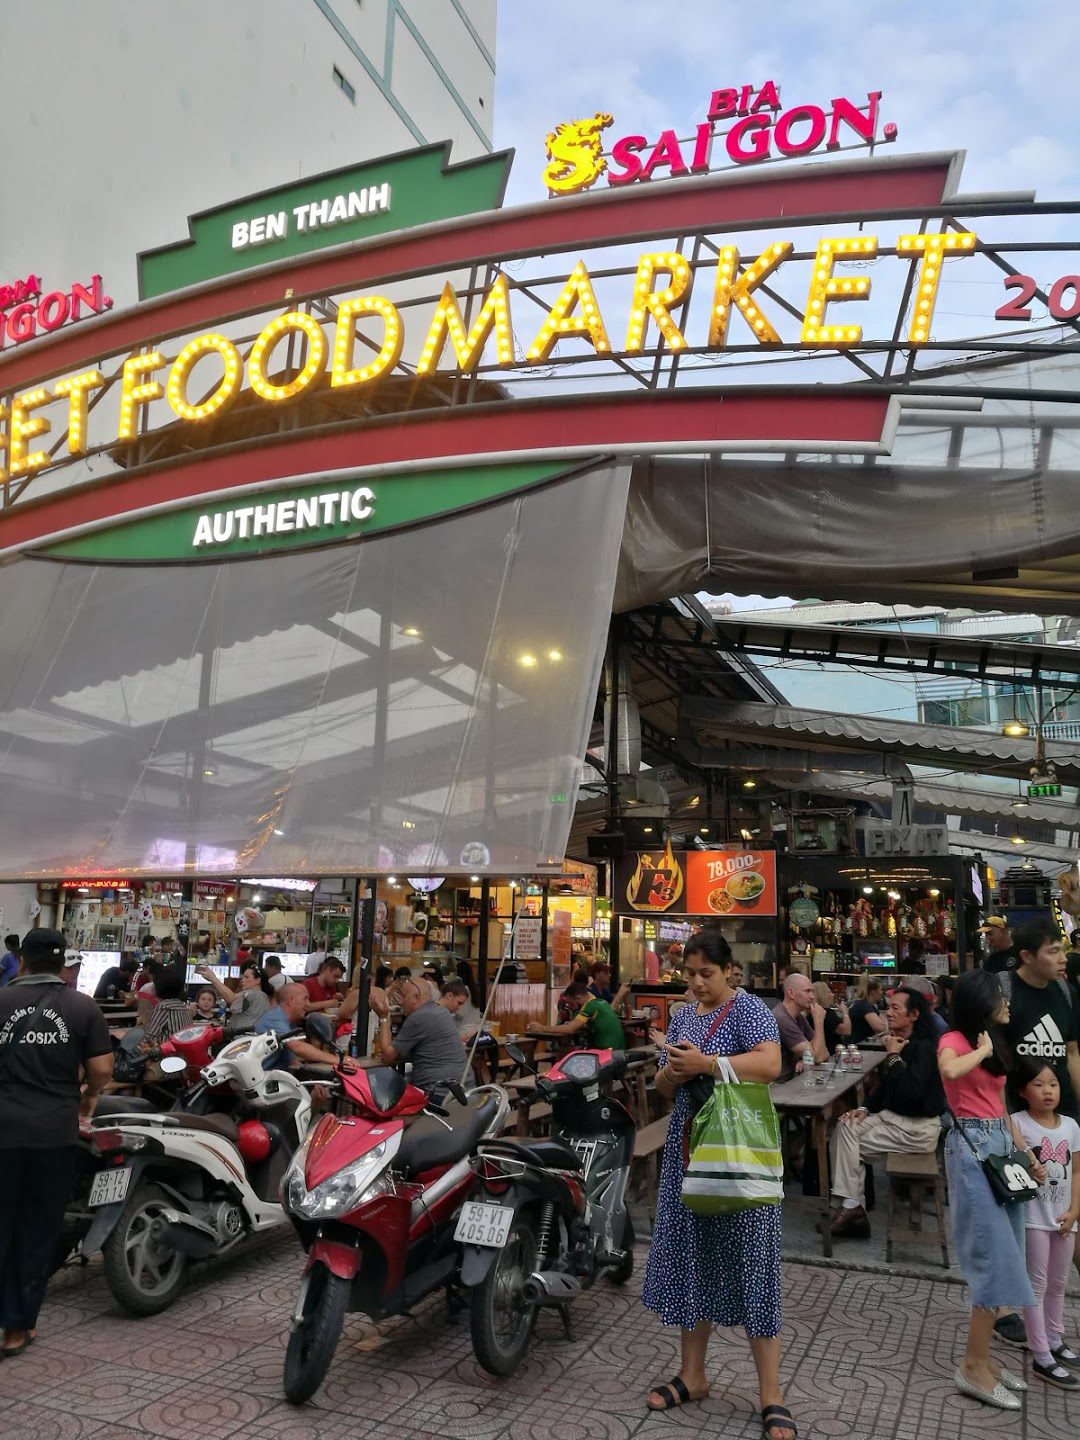 mercado-ben-than-saigon